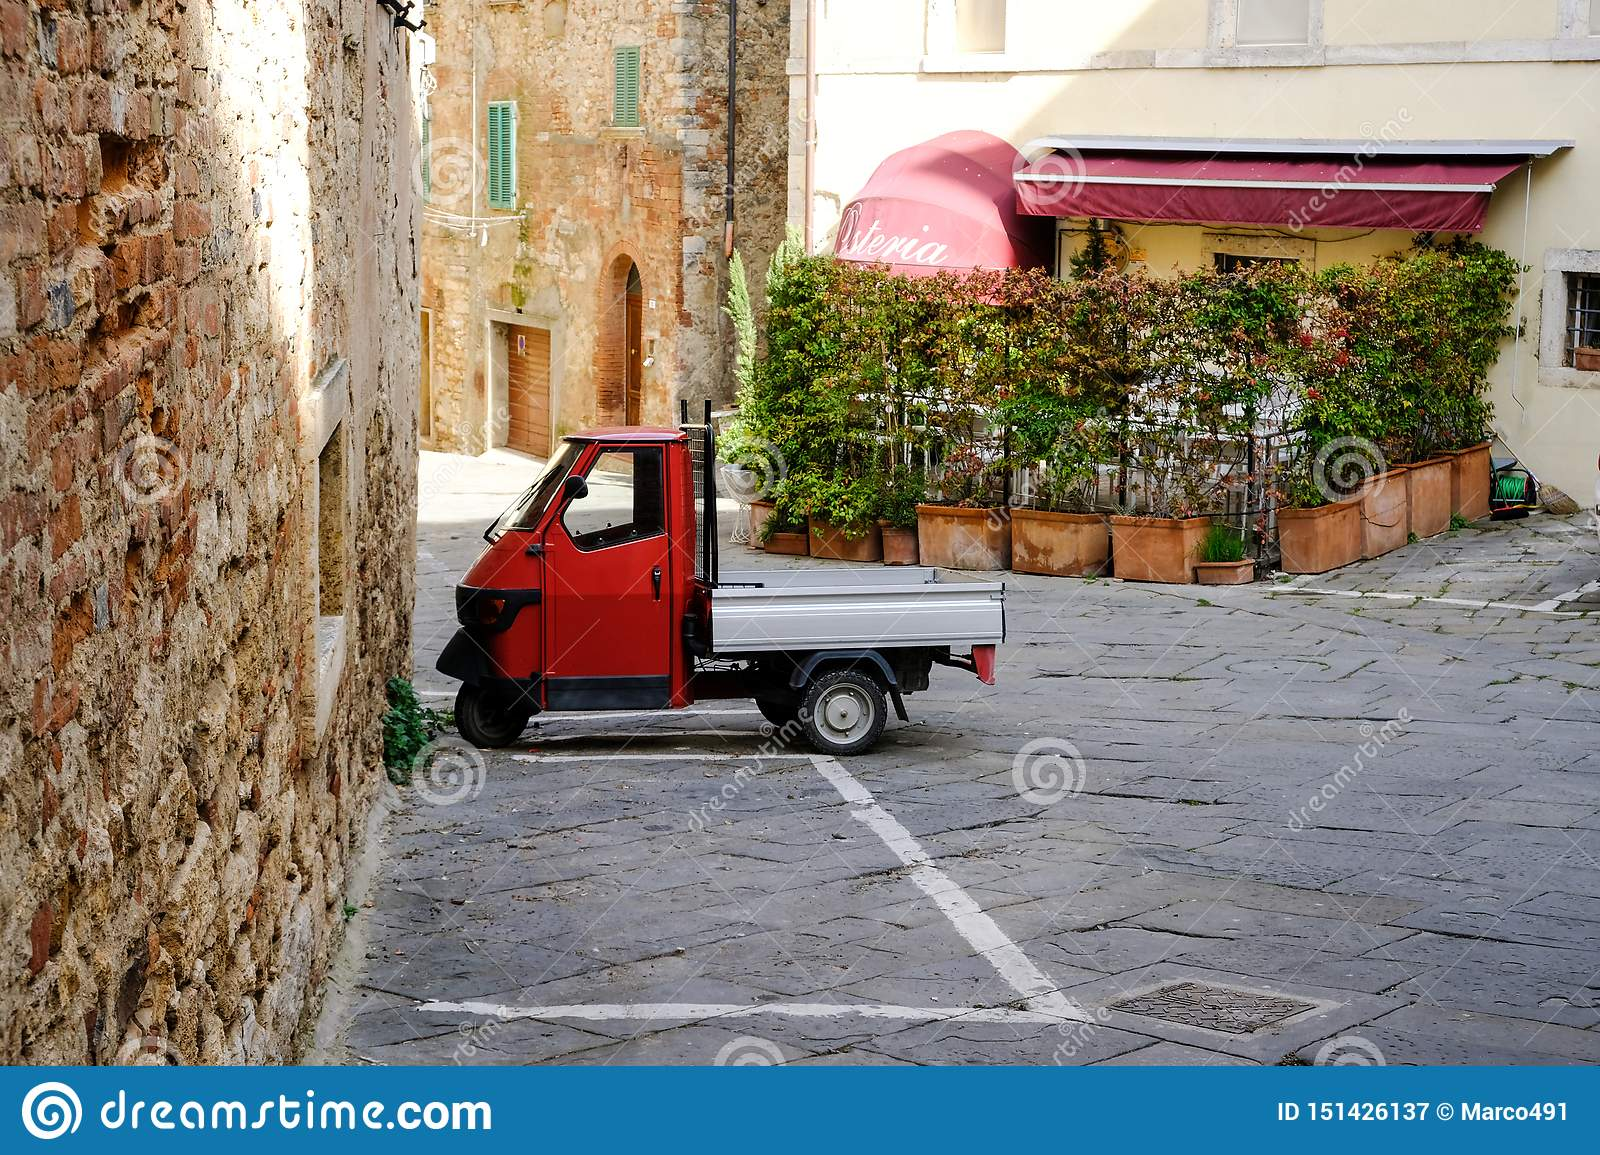 Rapolano Terme, Tuscany, Italy. Ape PIaggio red parked in the old town